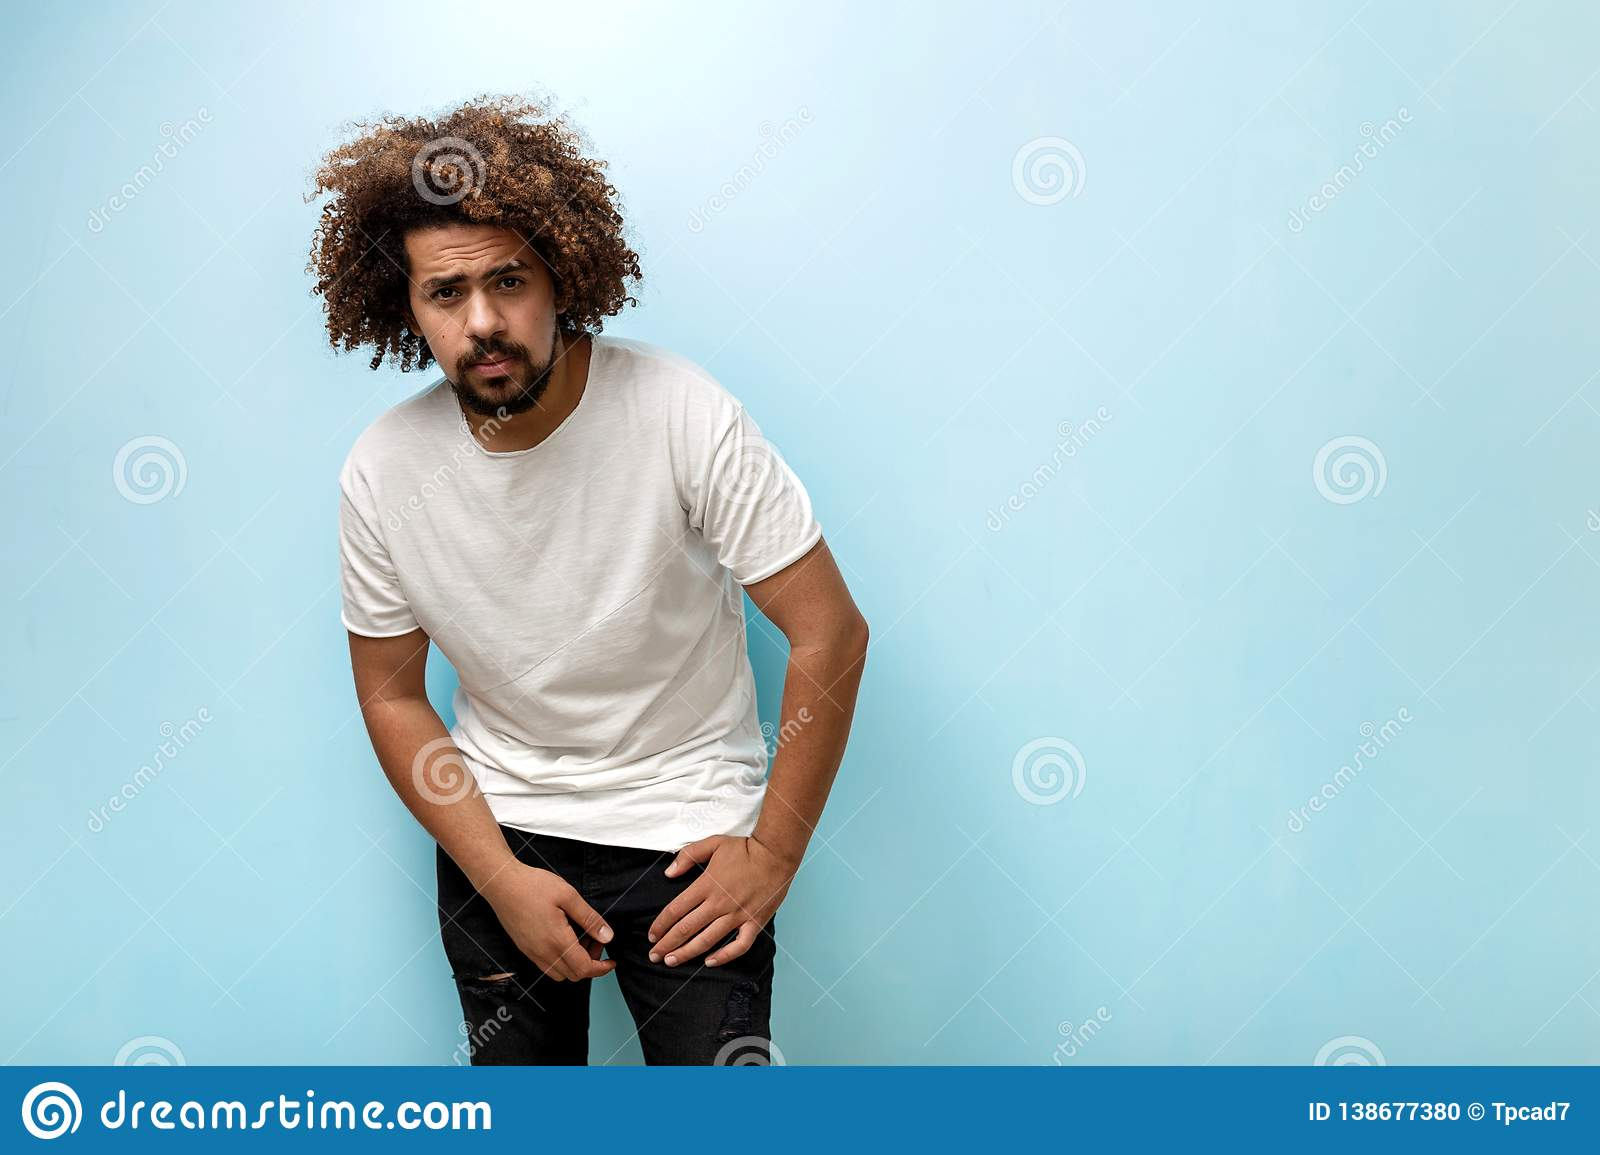 A curly-headed brunet man is leaning forwards wearing white T-shirt and ripped jeans. The guy is holding hands on the